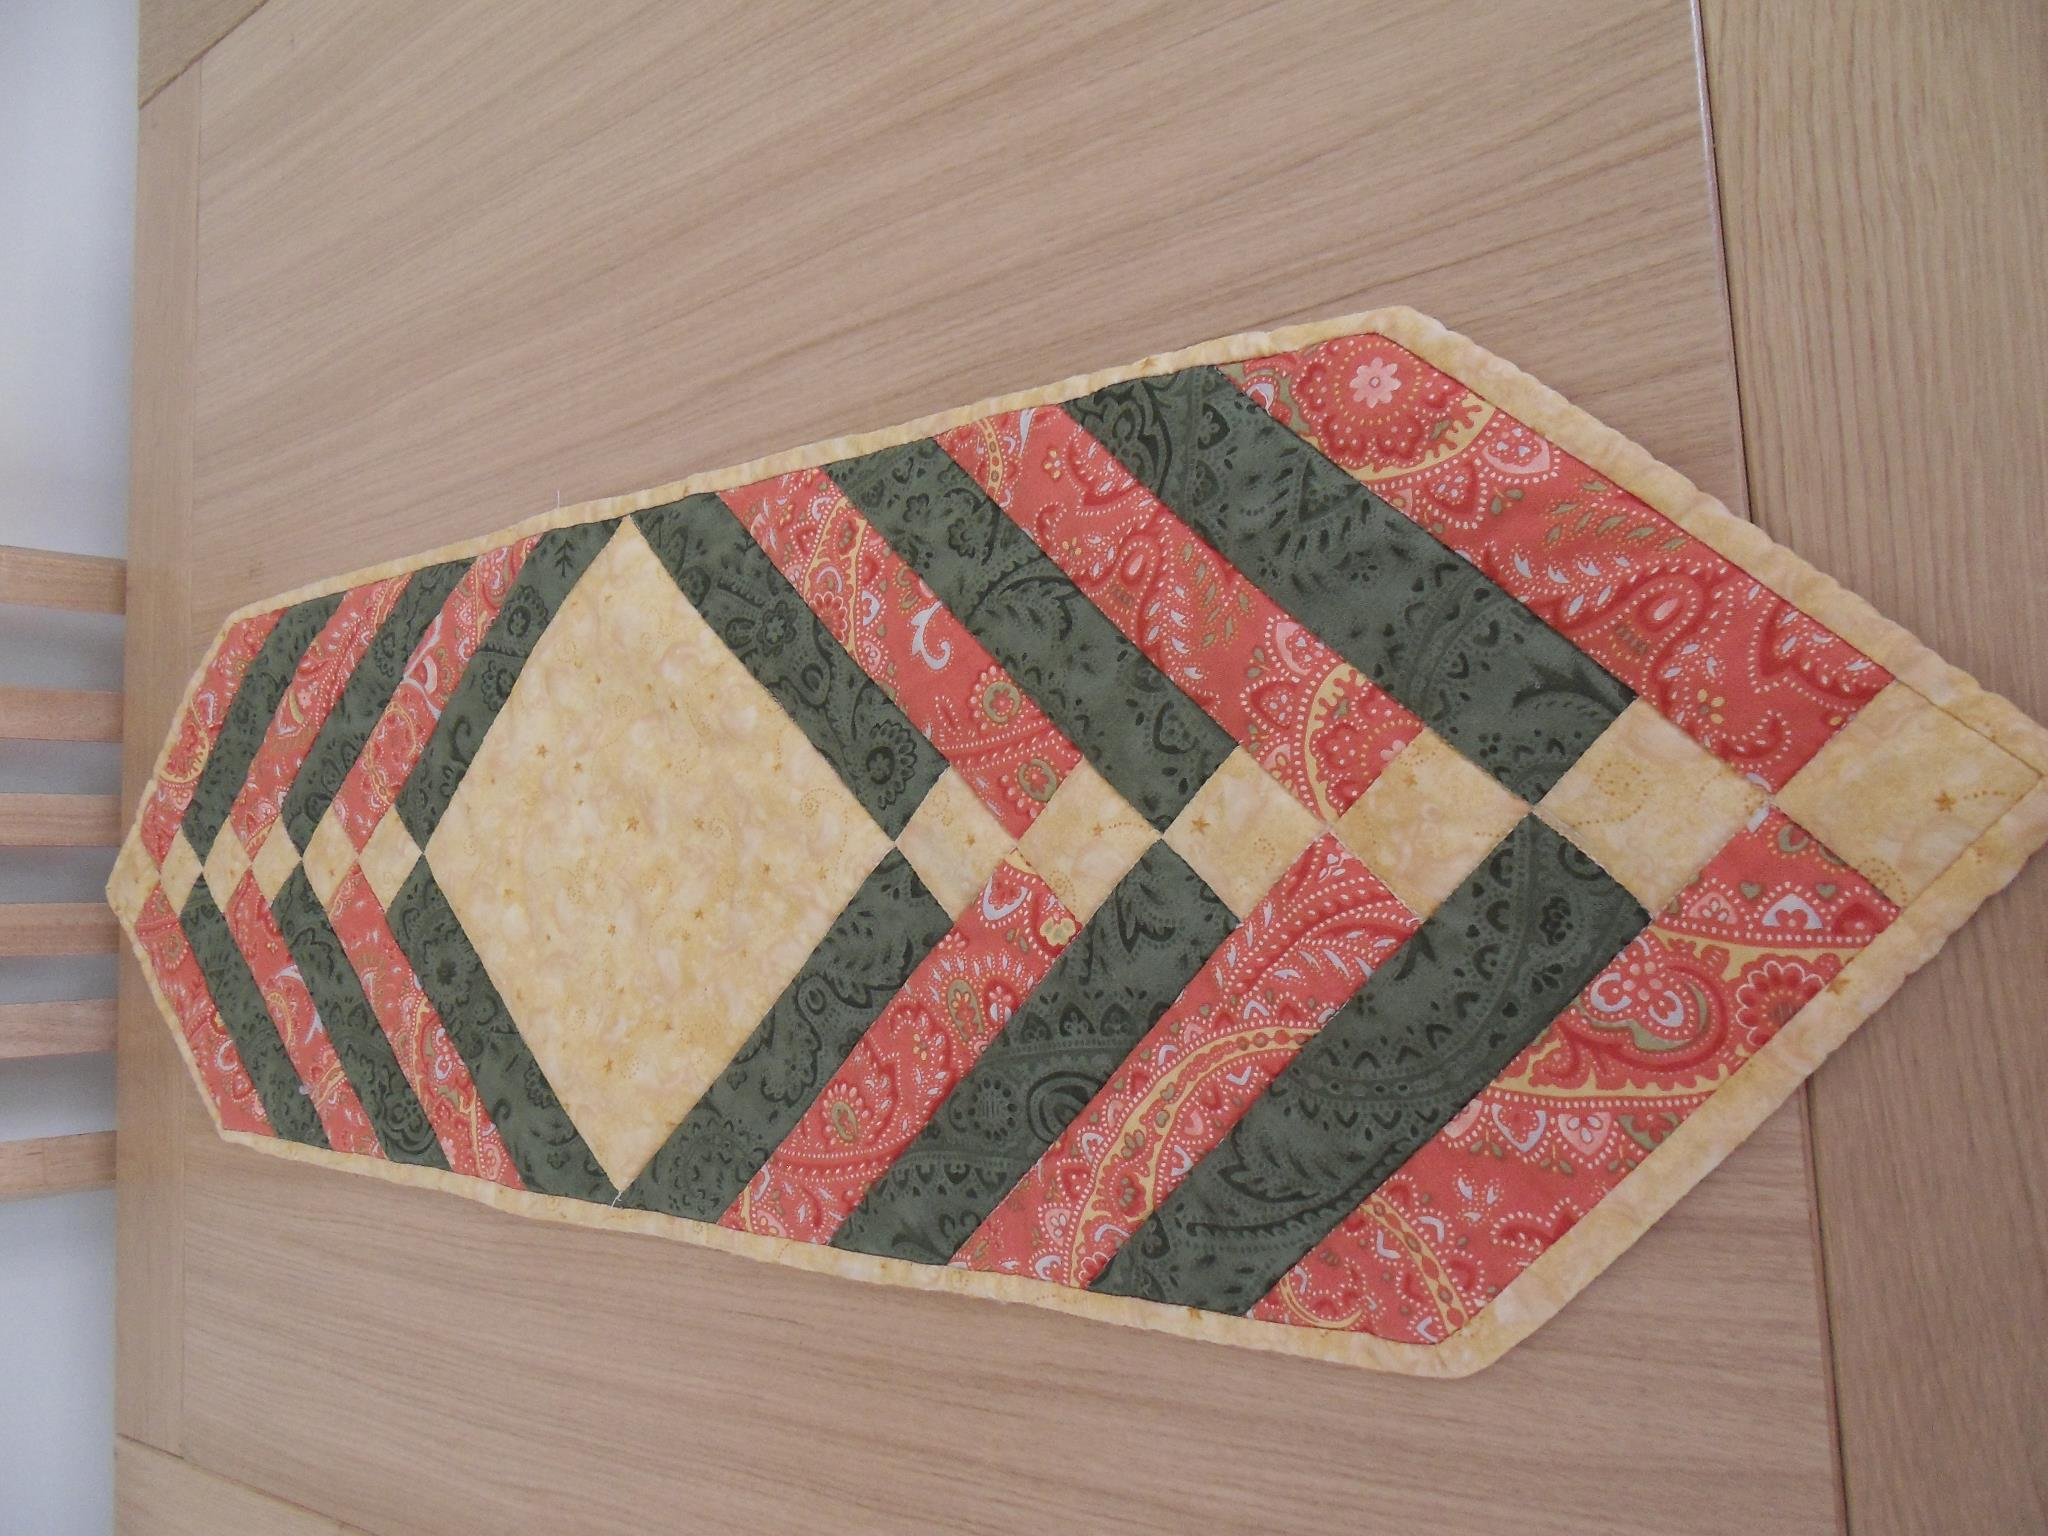 Central Diamond Table RunnerHand Made Quilting